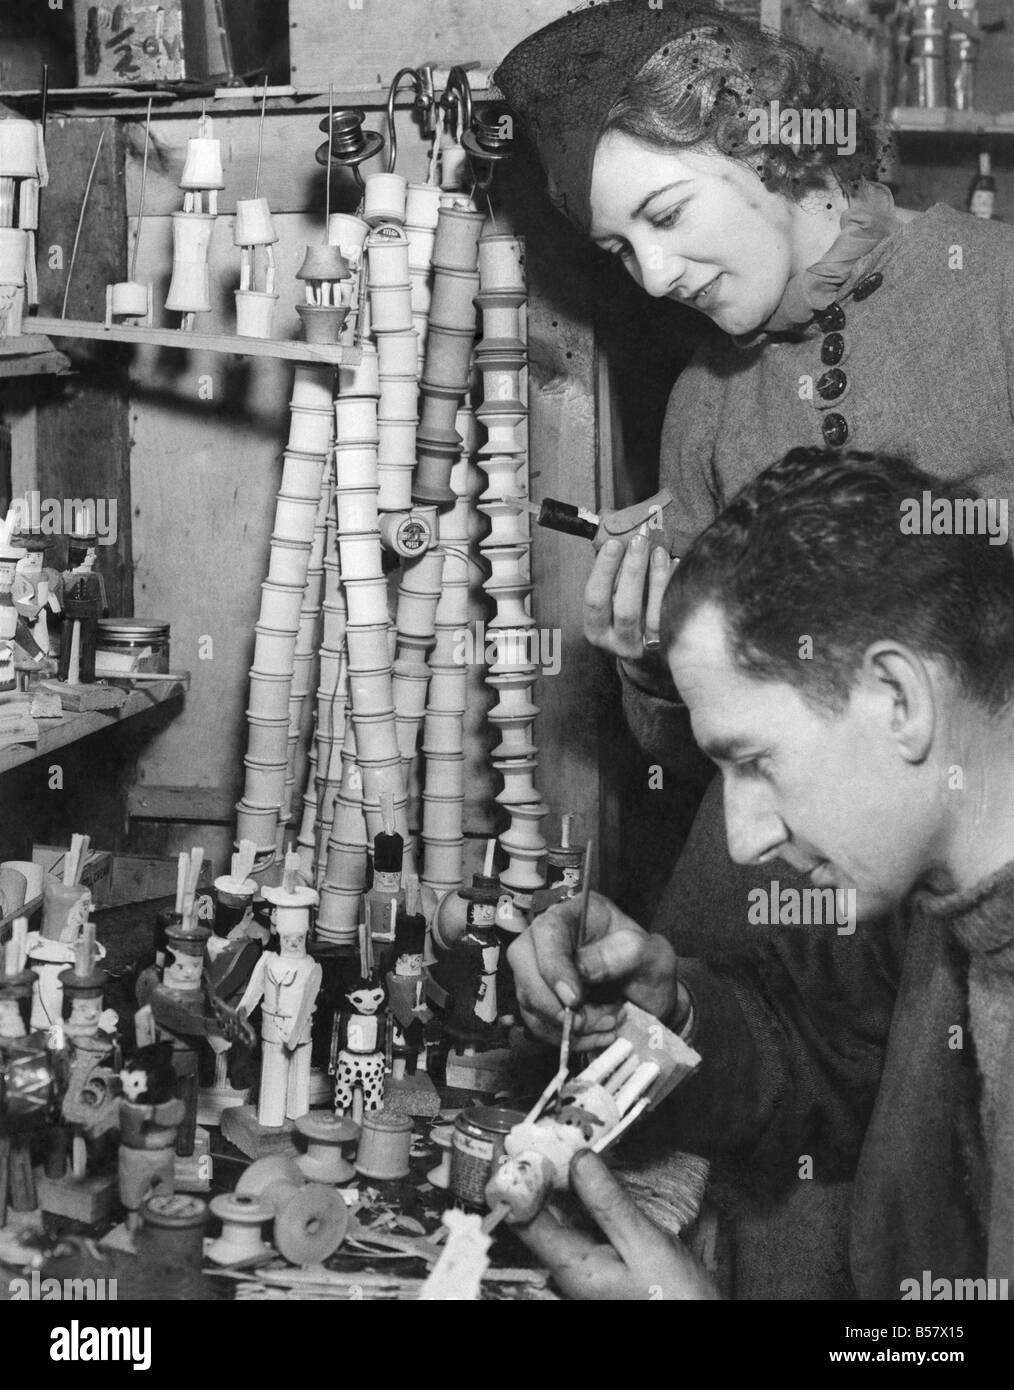 Man at work making cotton reel dolls watched by his wife. February 1938 